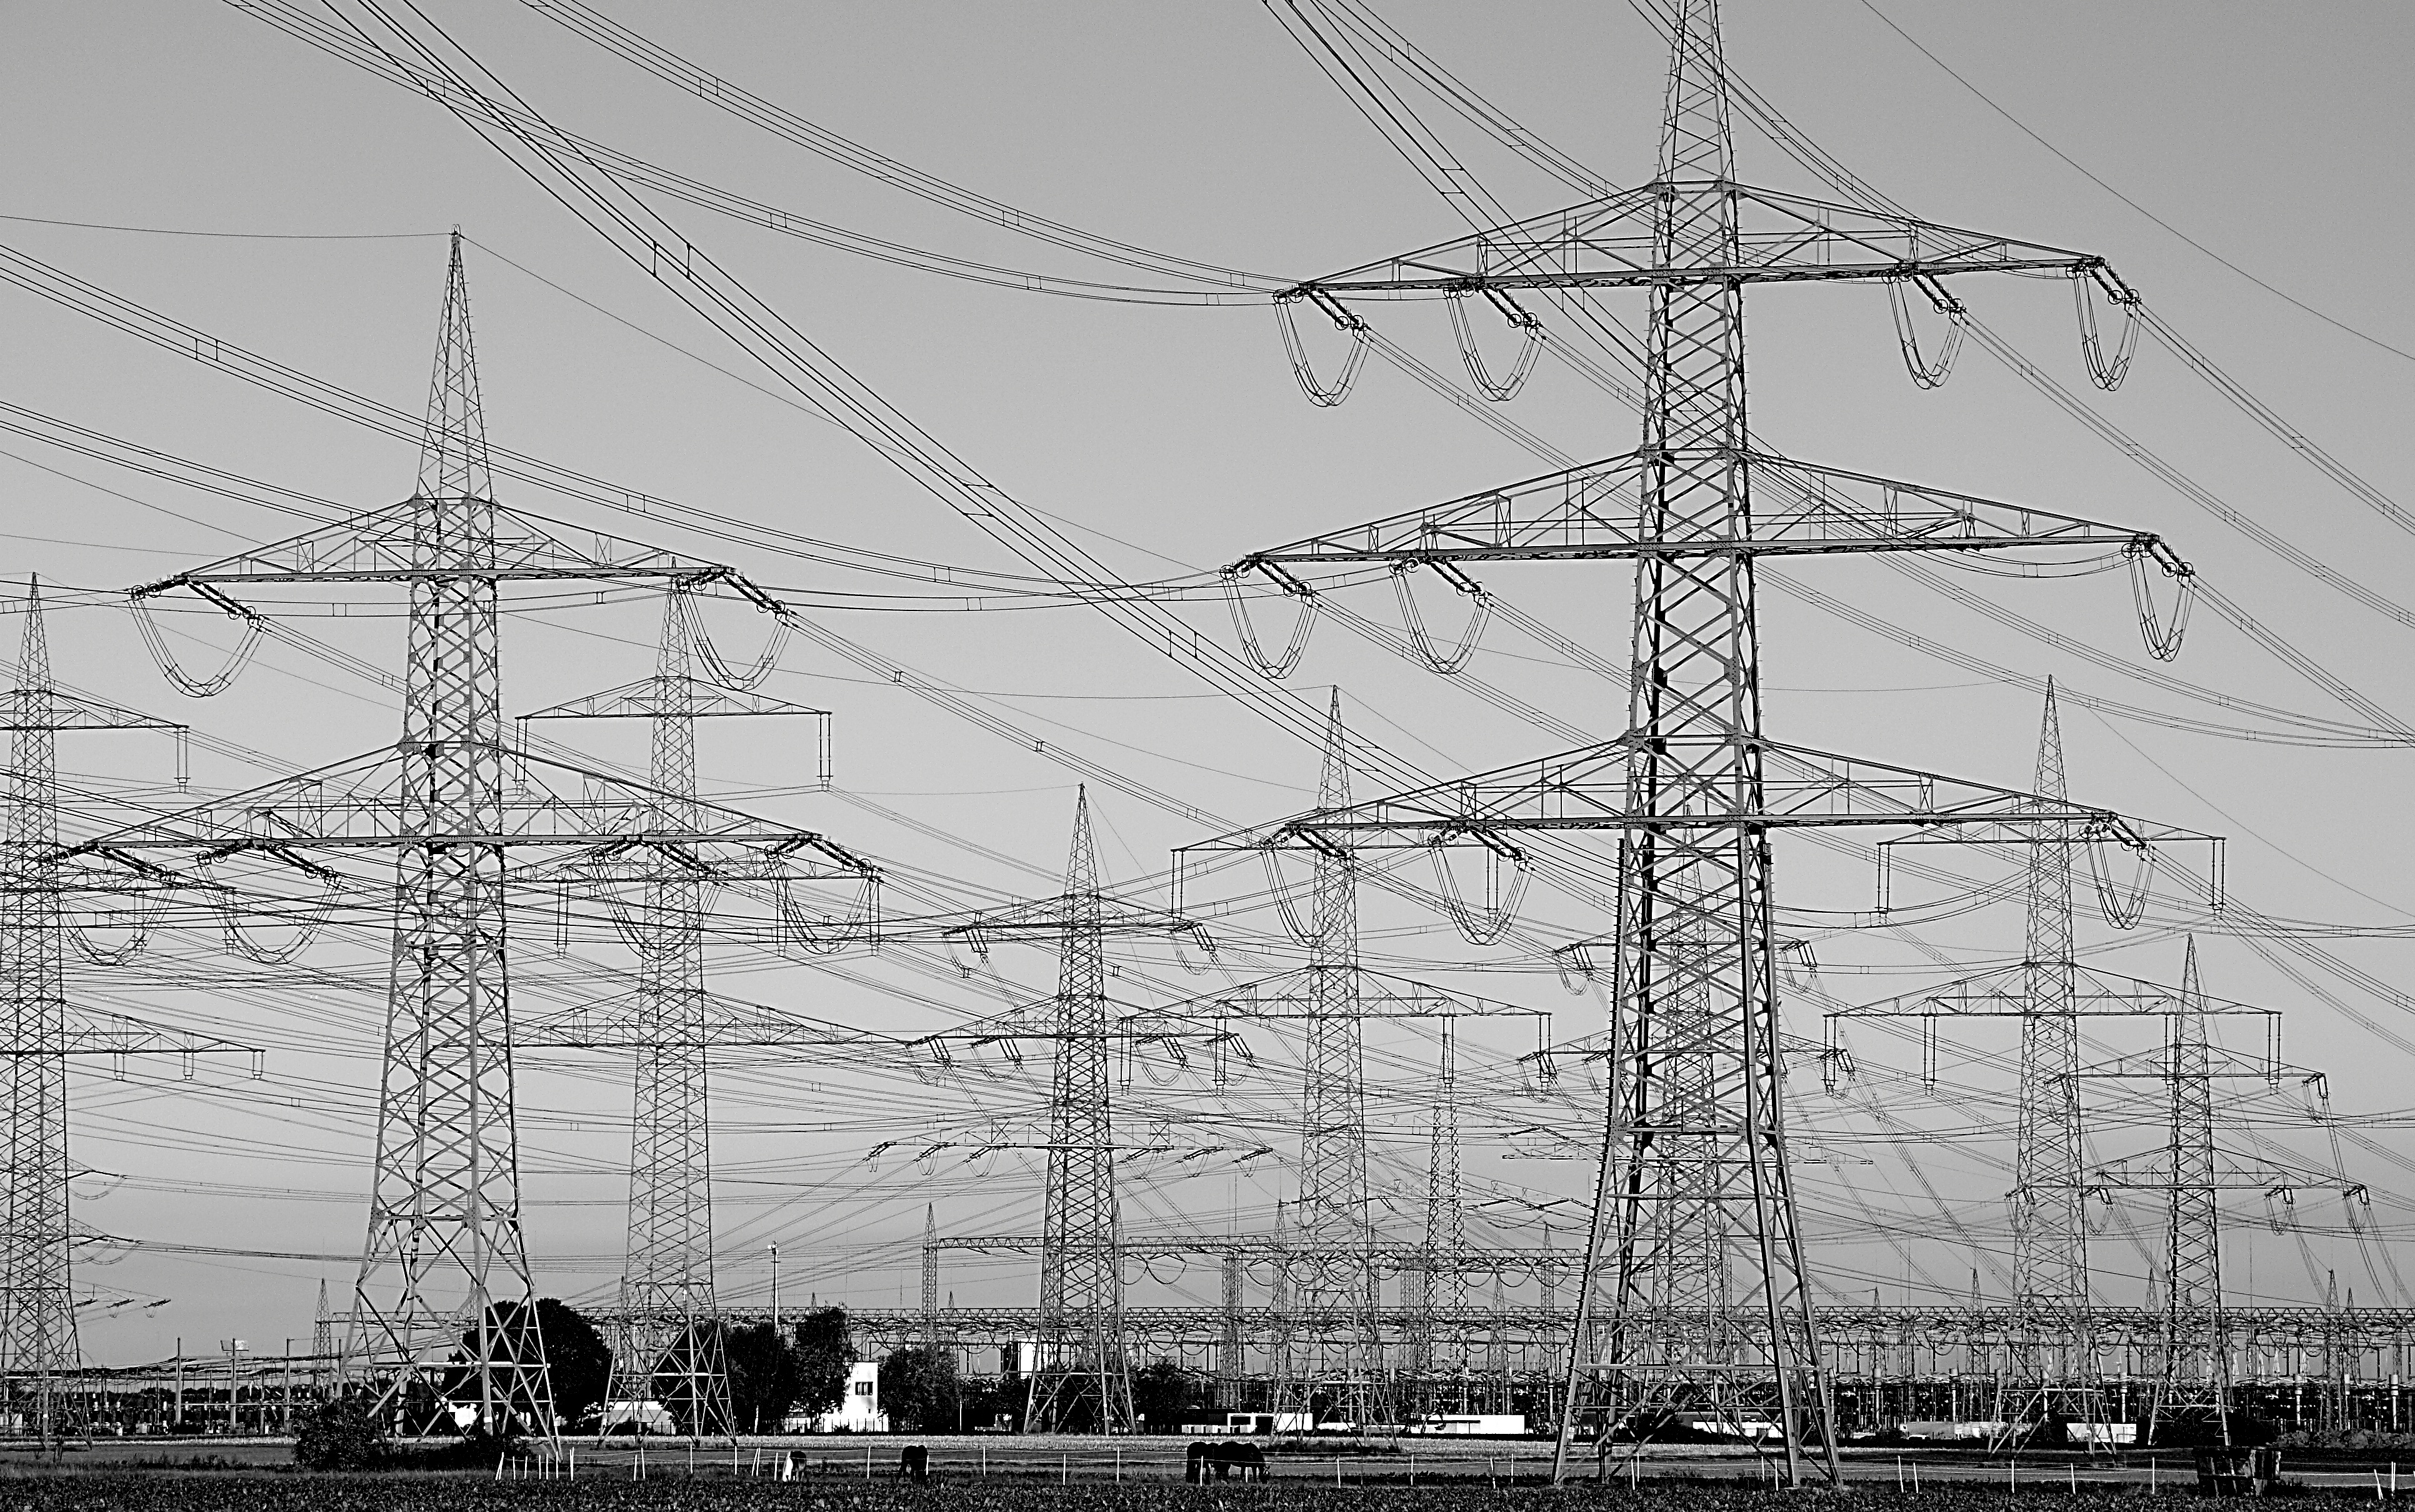 Drawn power line electrical pole Electricity supply pylon power Images